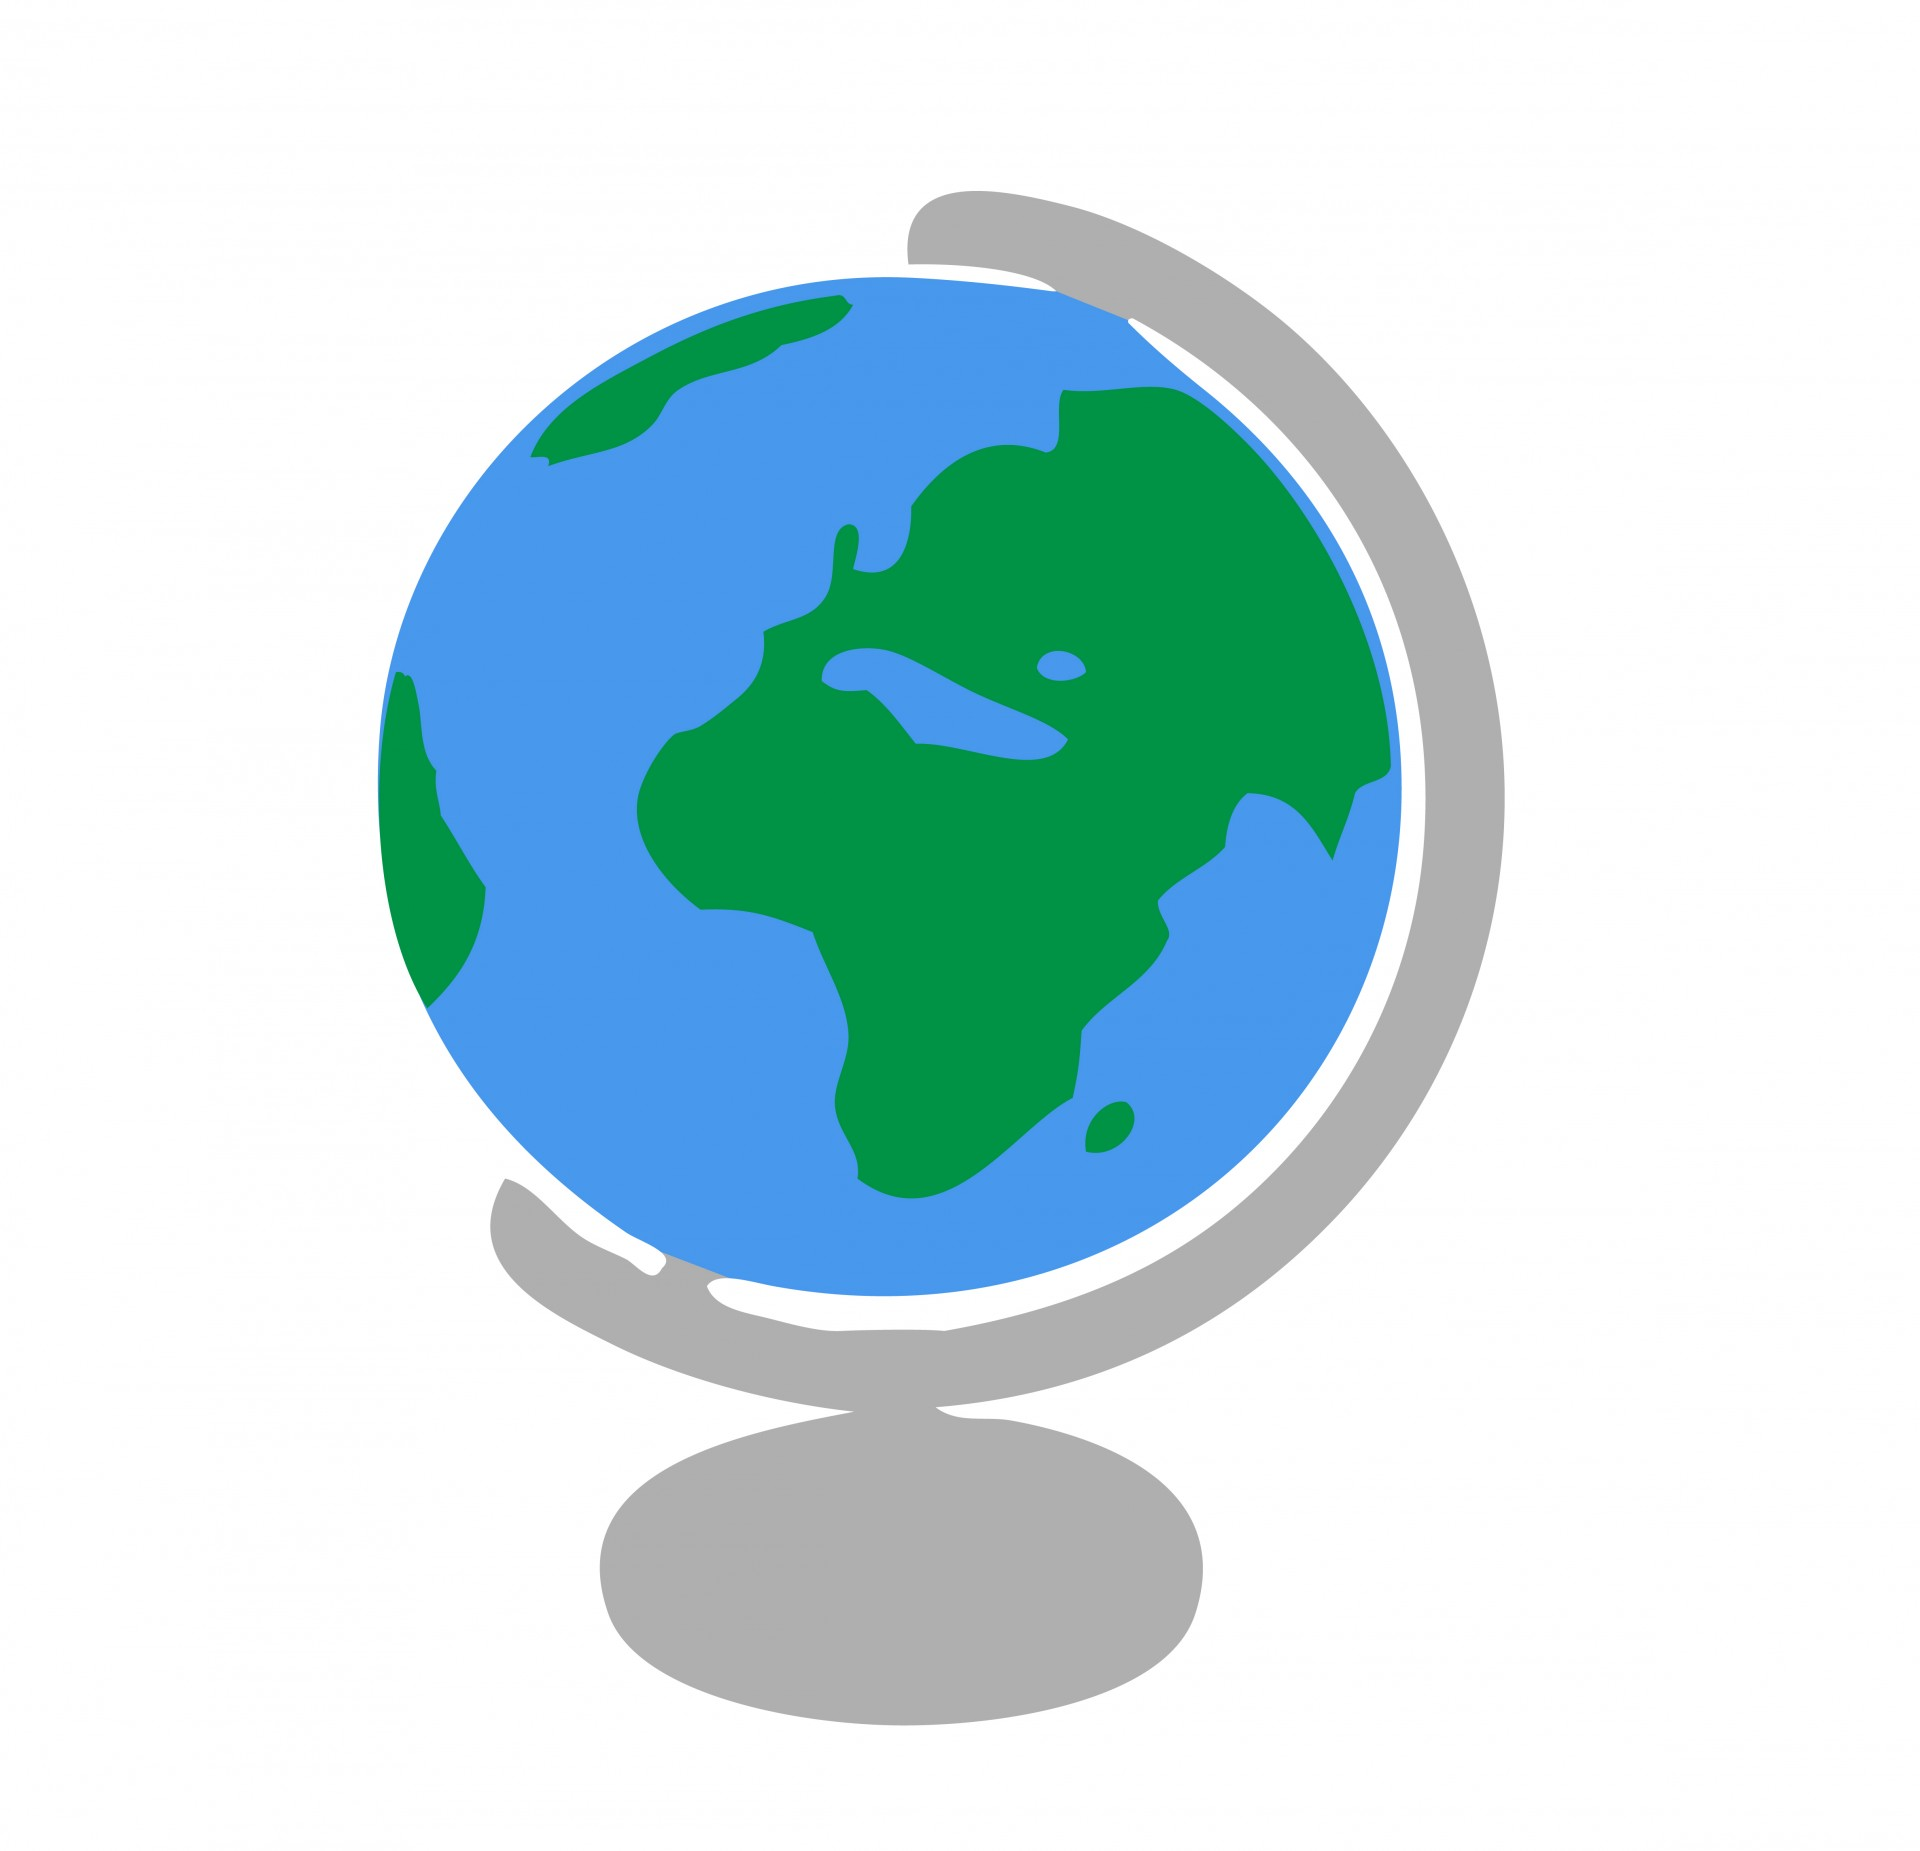 Animated globe clipart free clipart image 2